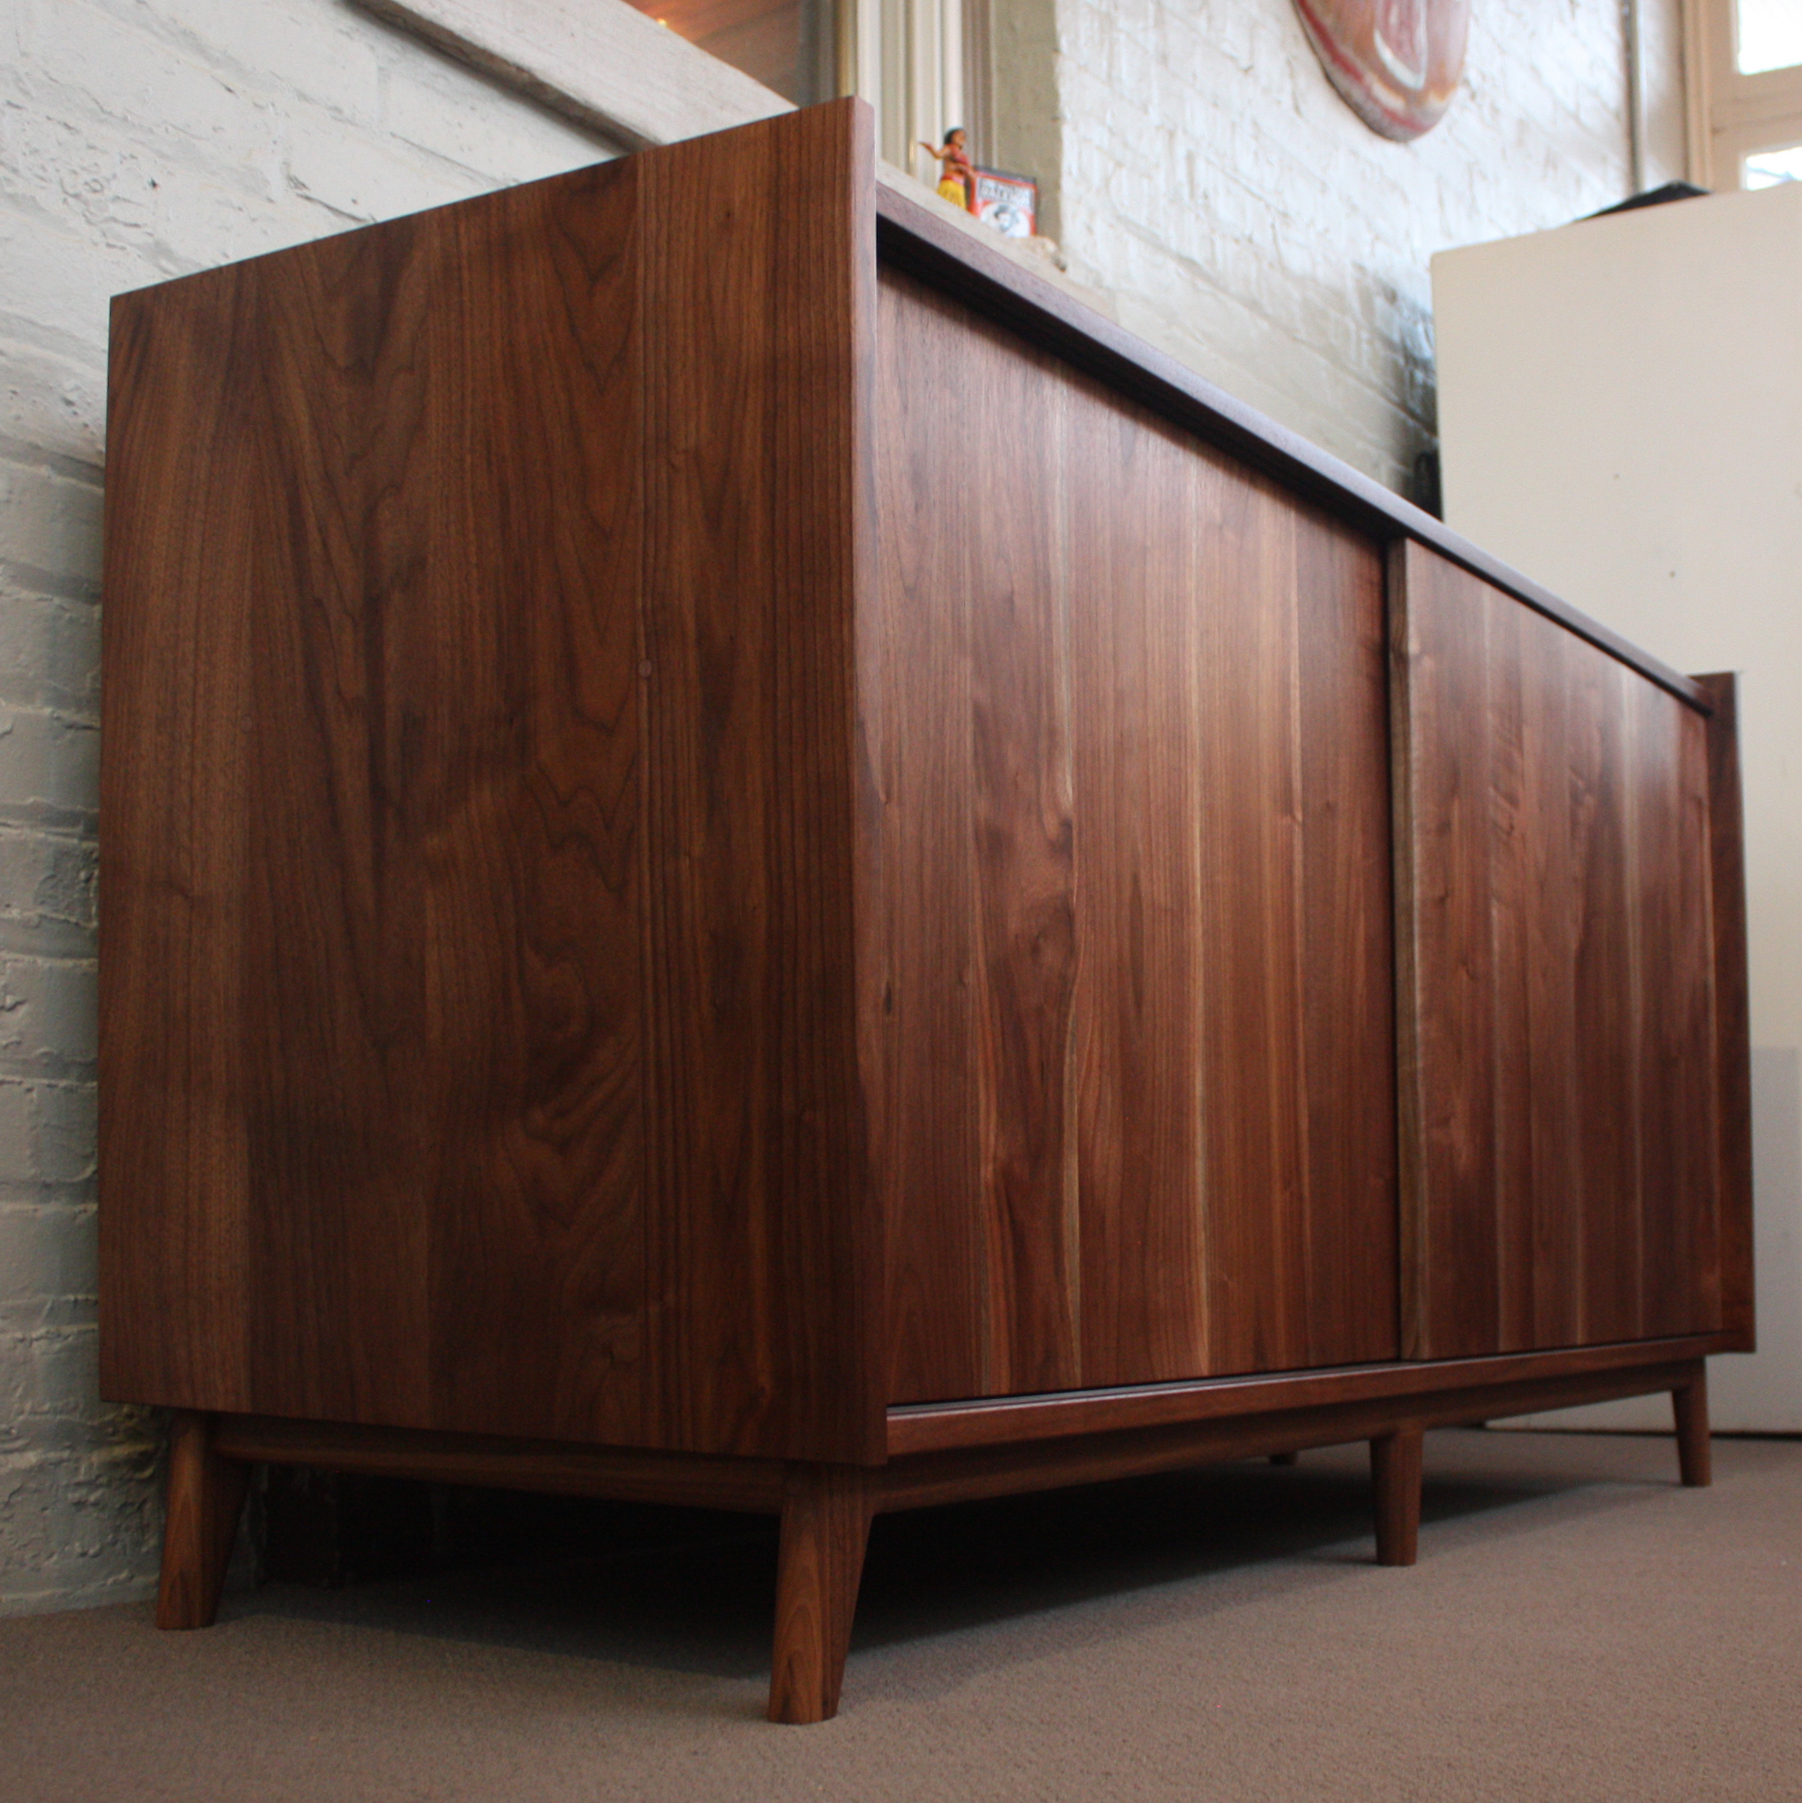 The Standard Deluxe Audio Credenza